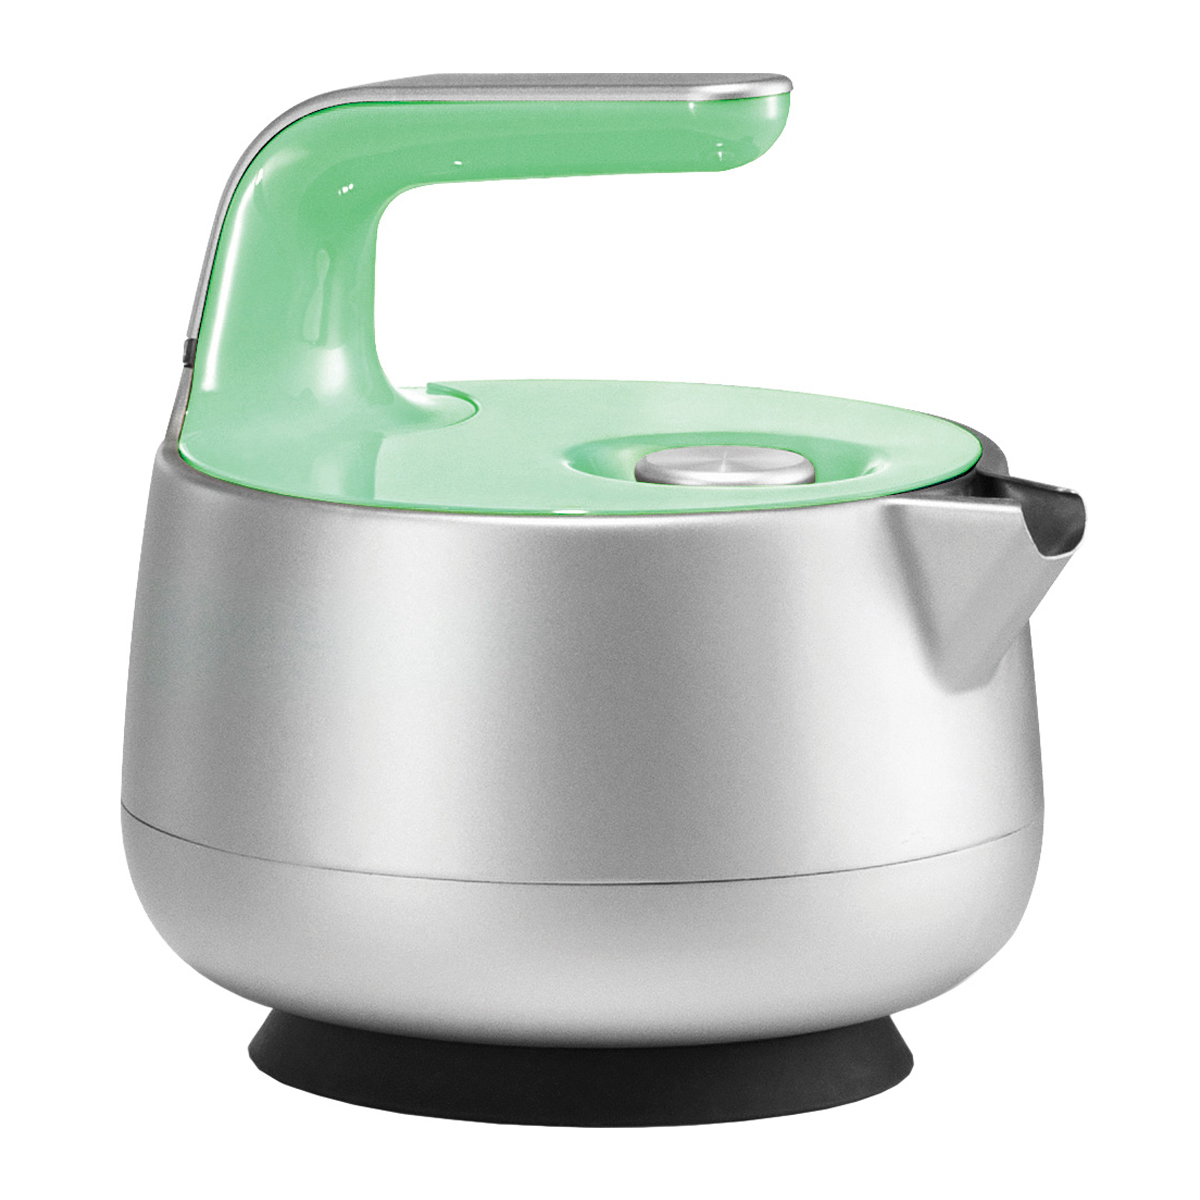 Sunbeam KE8850G Marc Newson Kettle Lucite Green